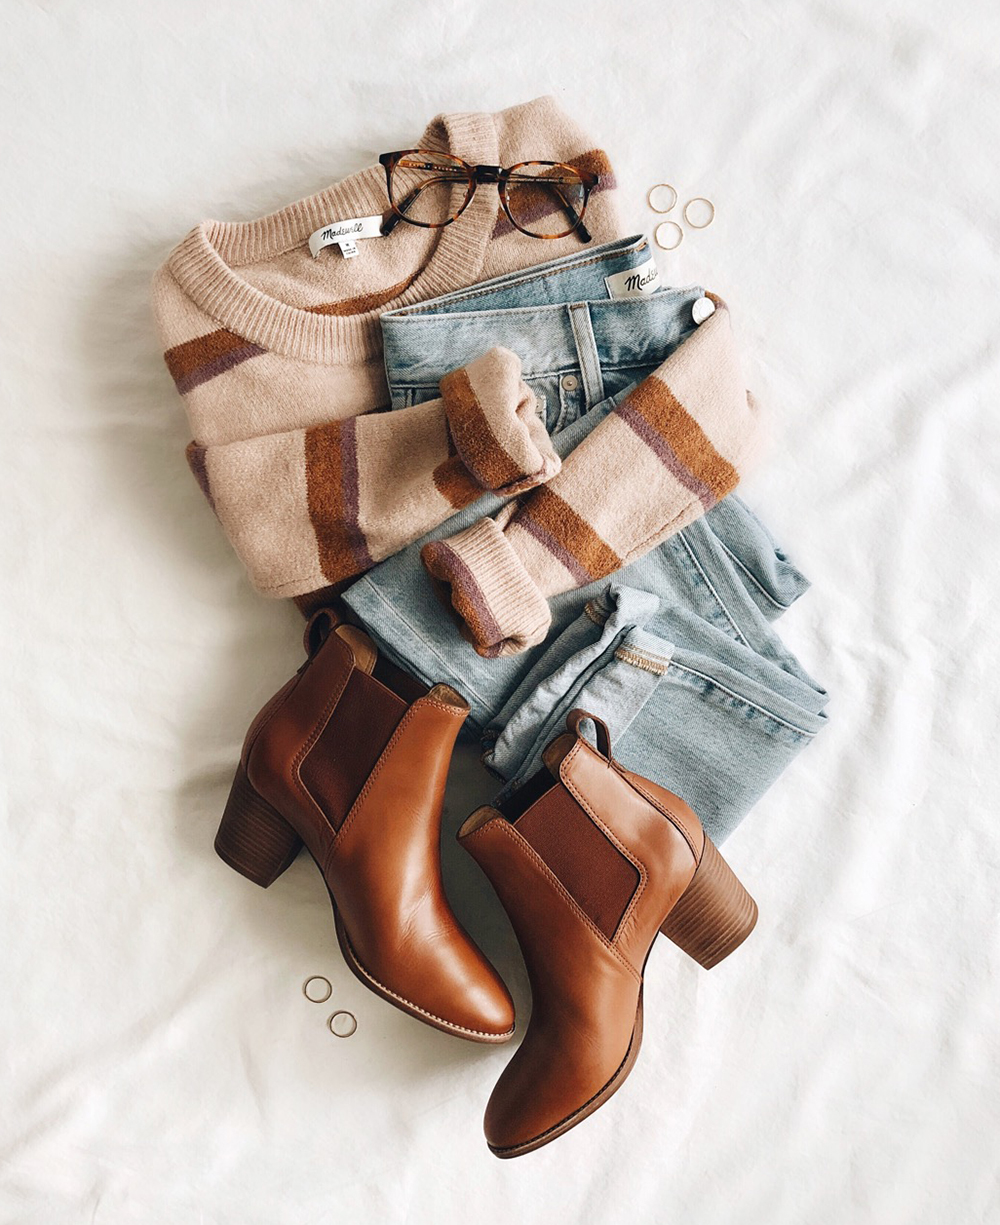 livvyland-blog-olivia-watson-best-cyber-monday-sales-madewell-raglan-boots-striped-sweater-outfit